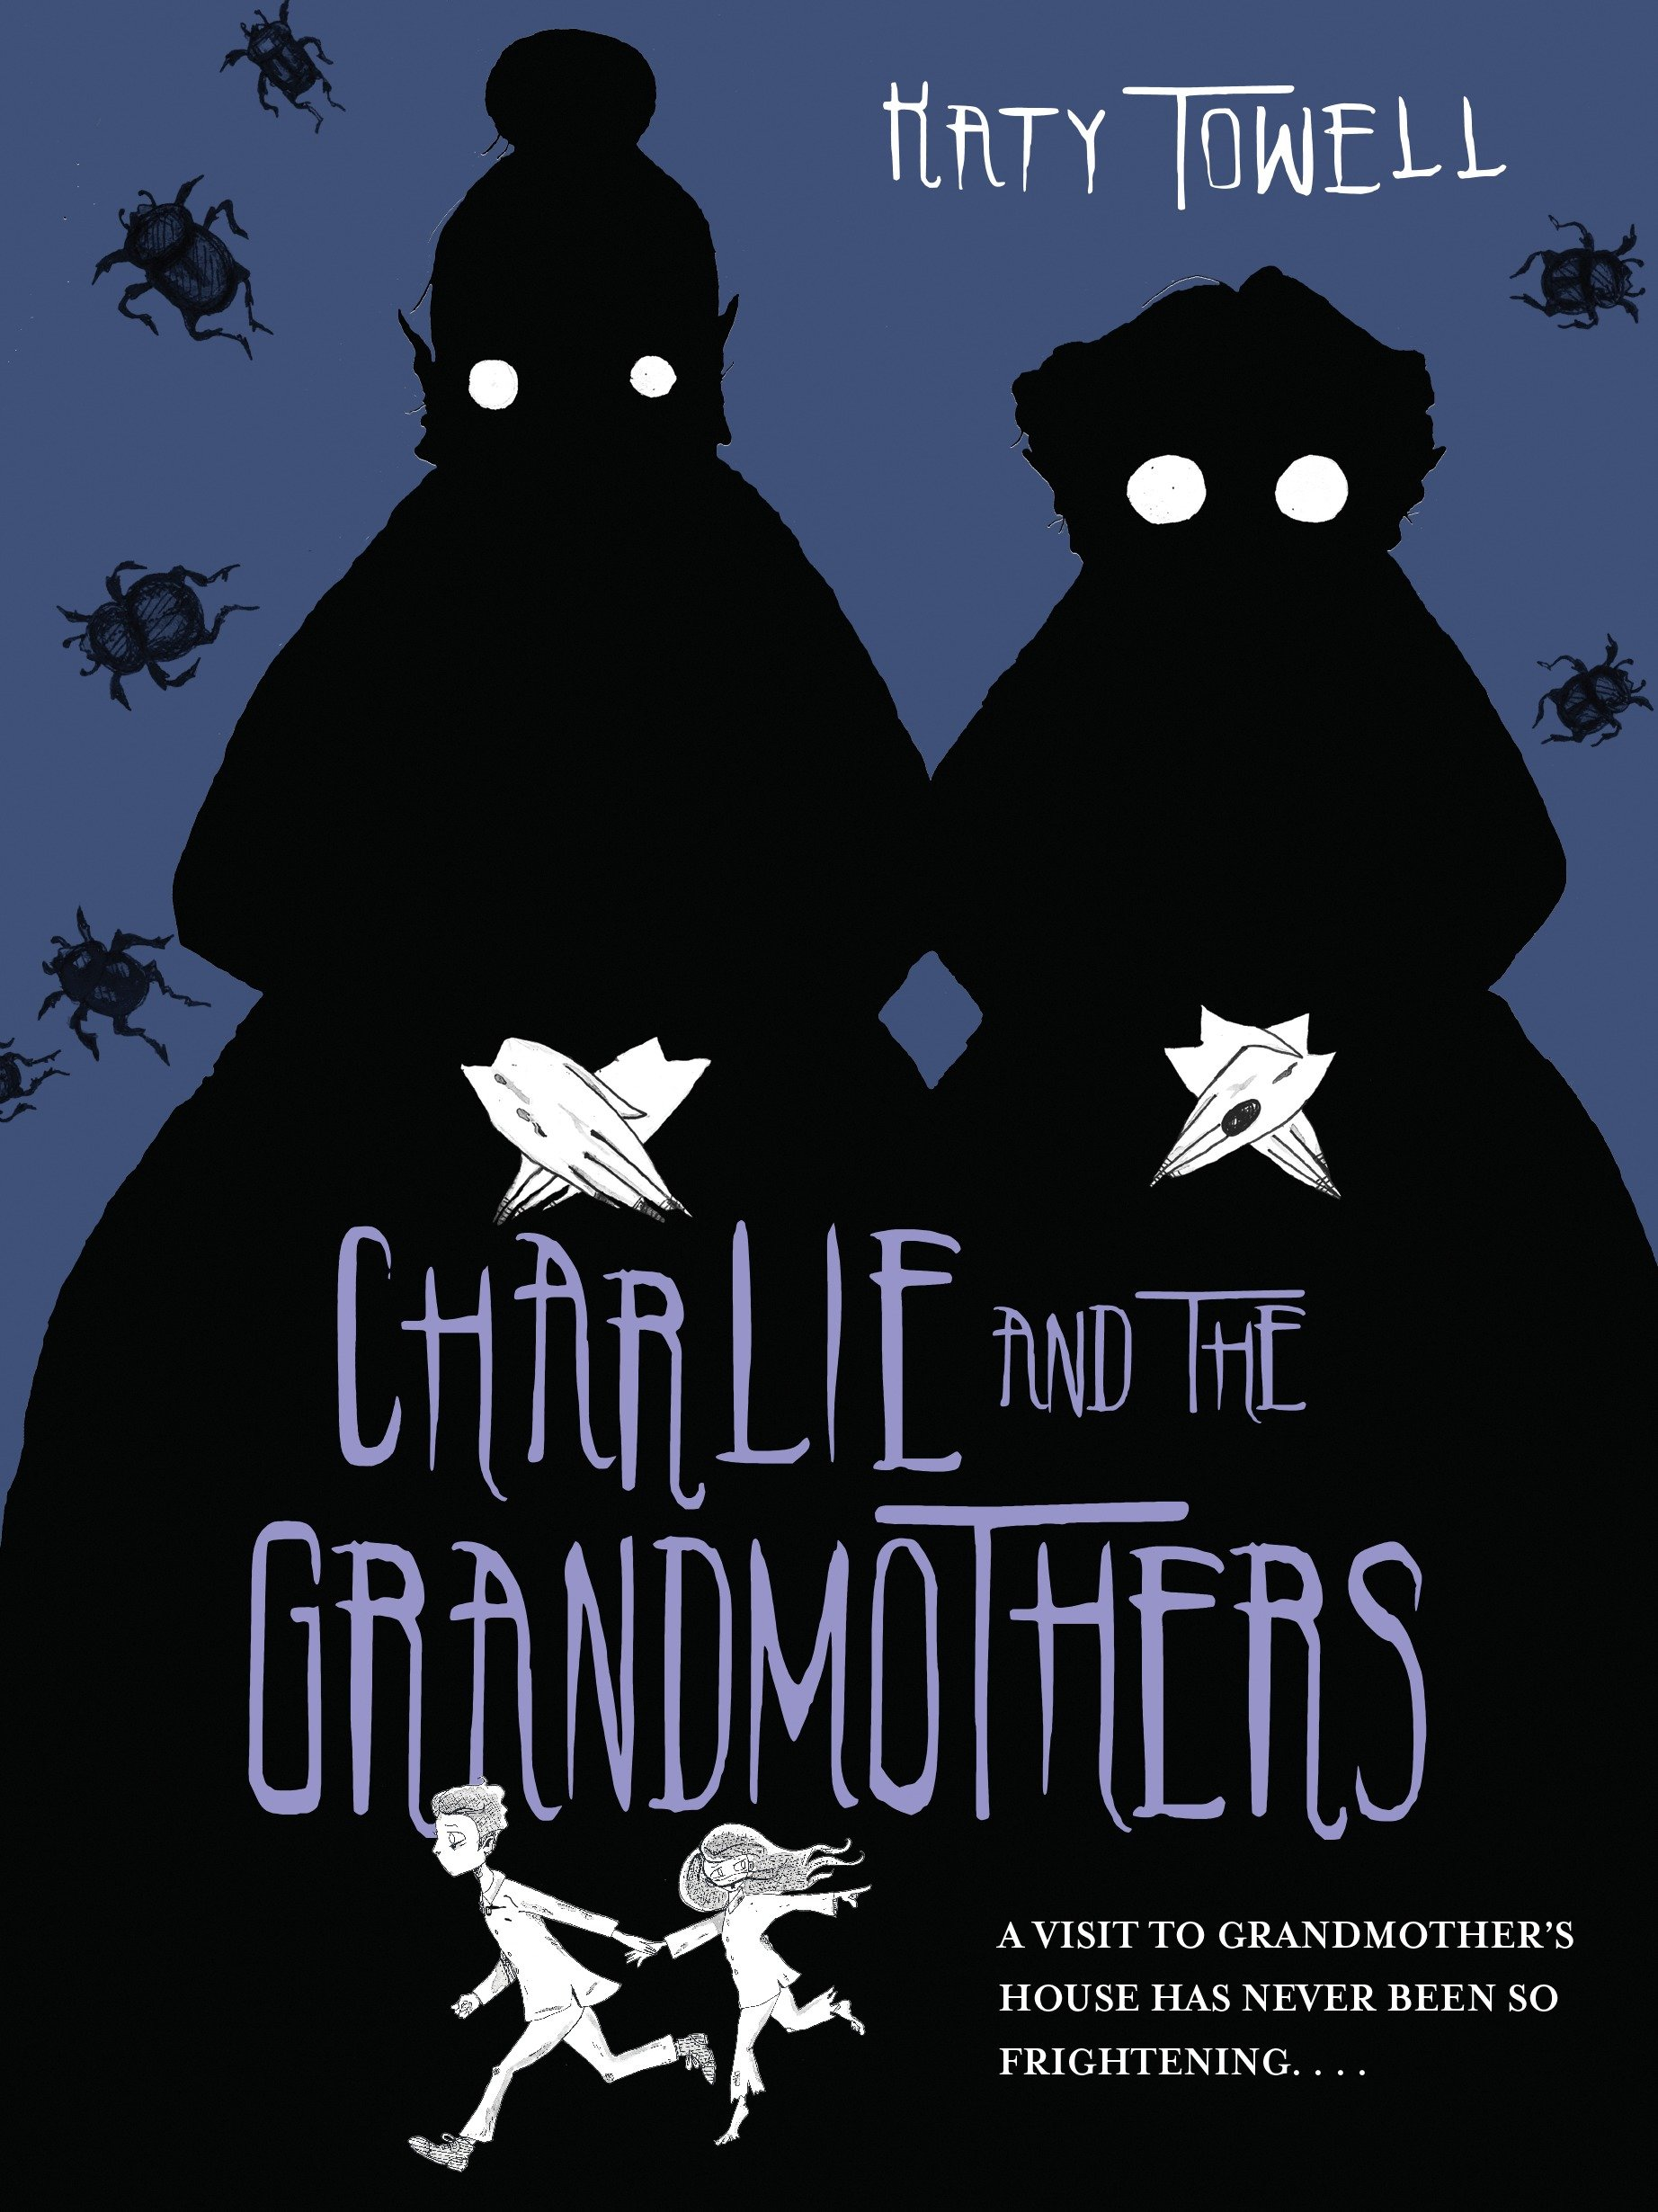 Charlie and the grandmothers cover image